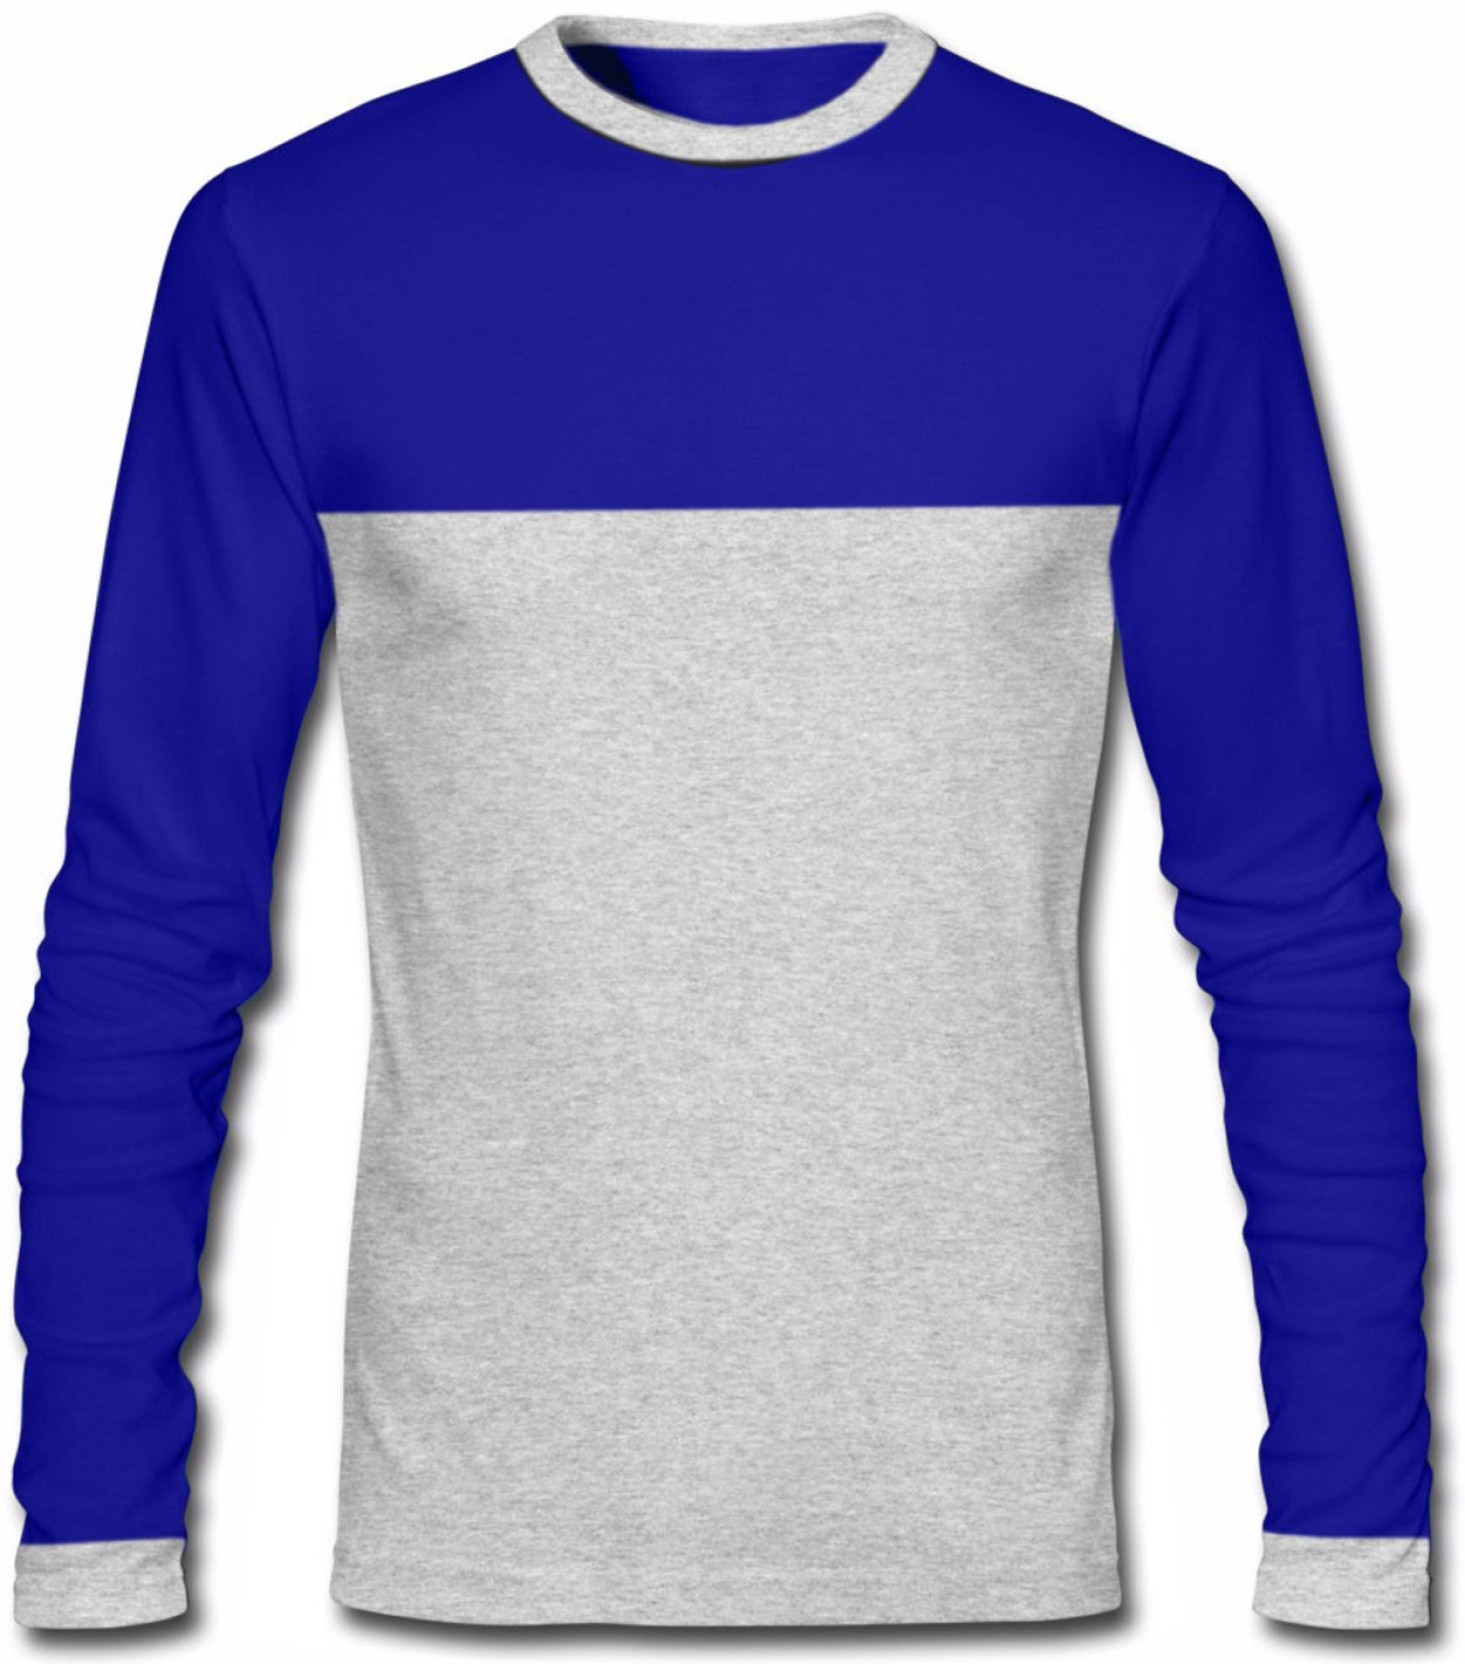 Ghpc solid men 39 s round neck blue t shirt buy royal blue for Best place to buy t shirts online